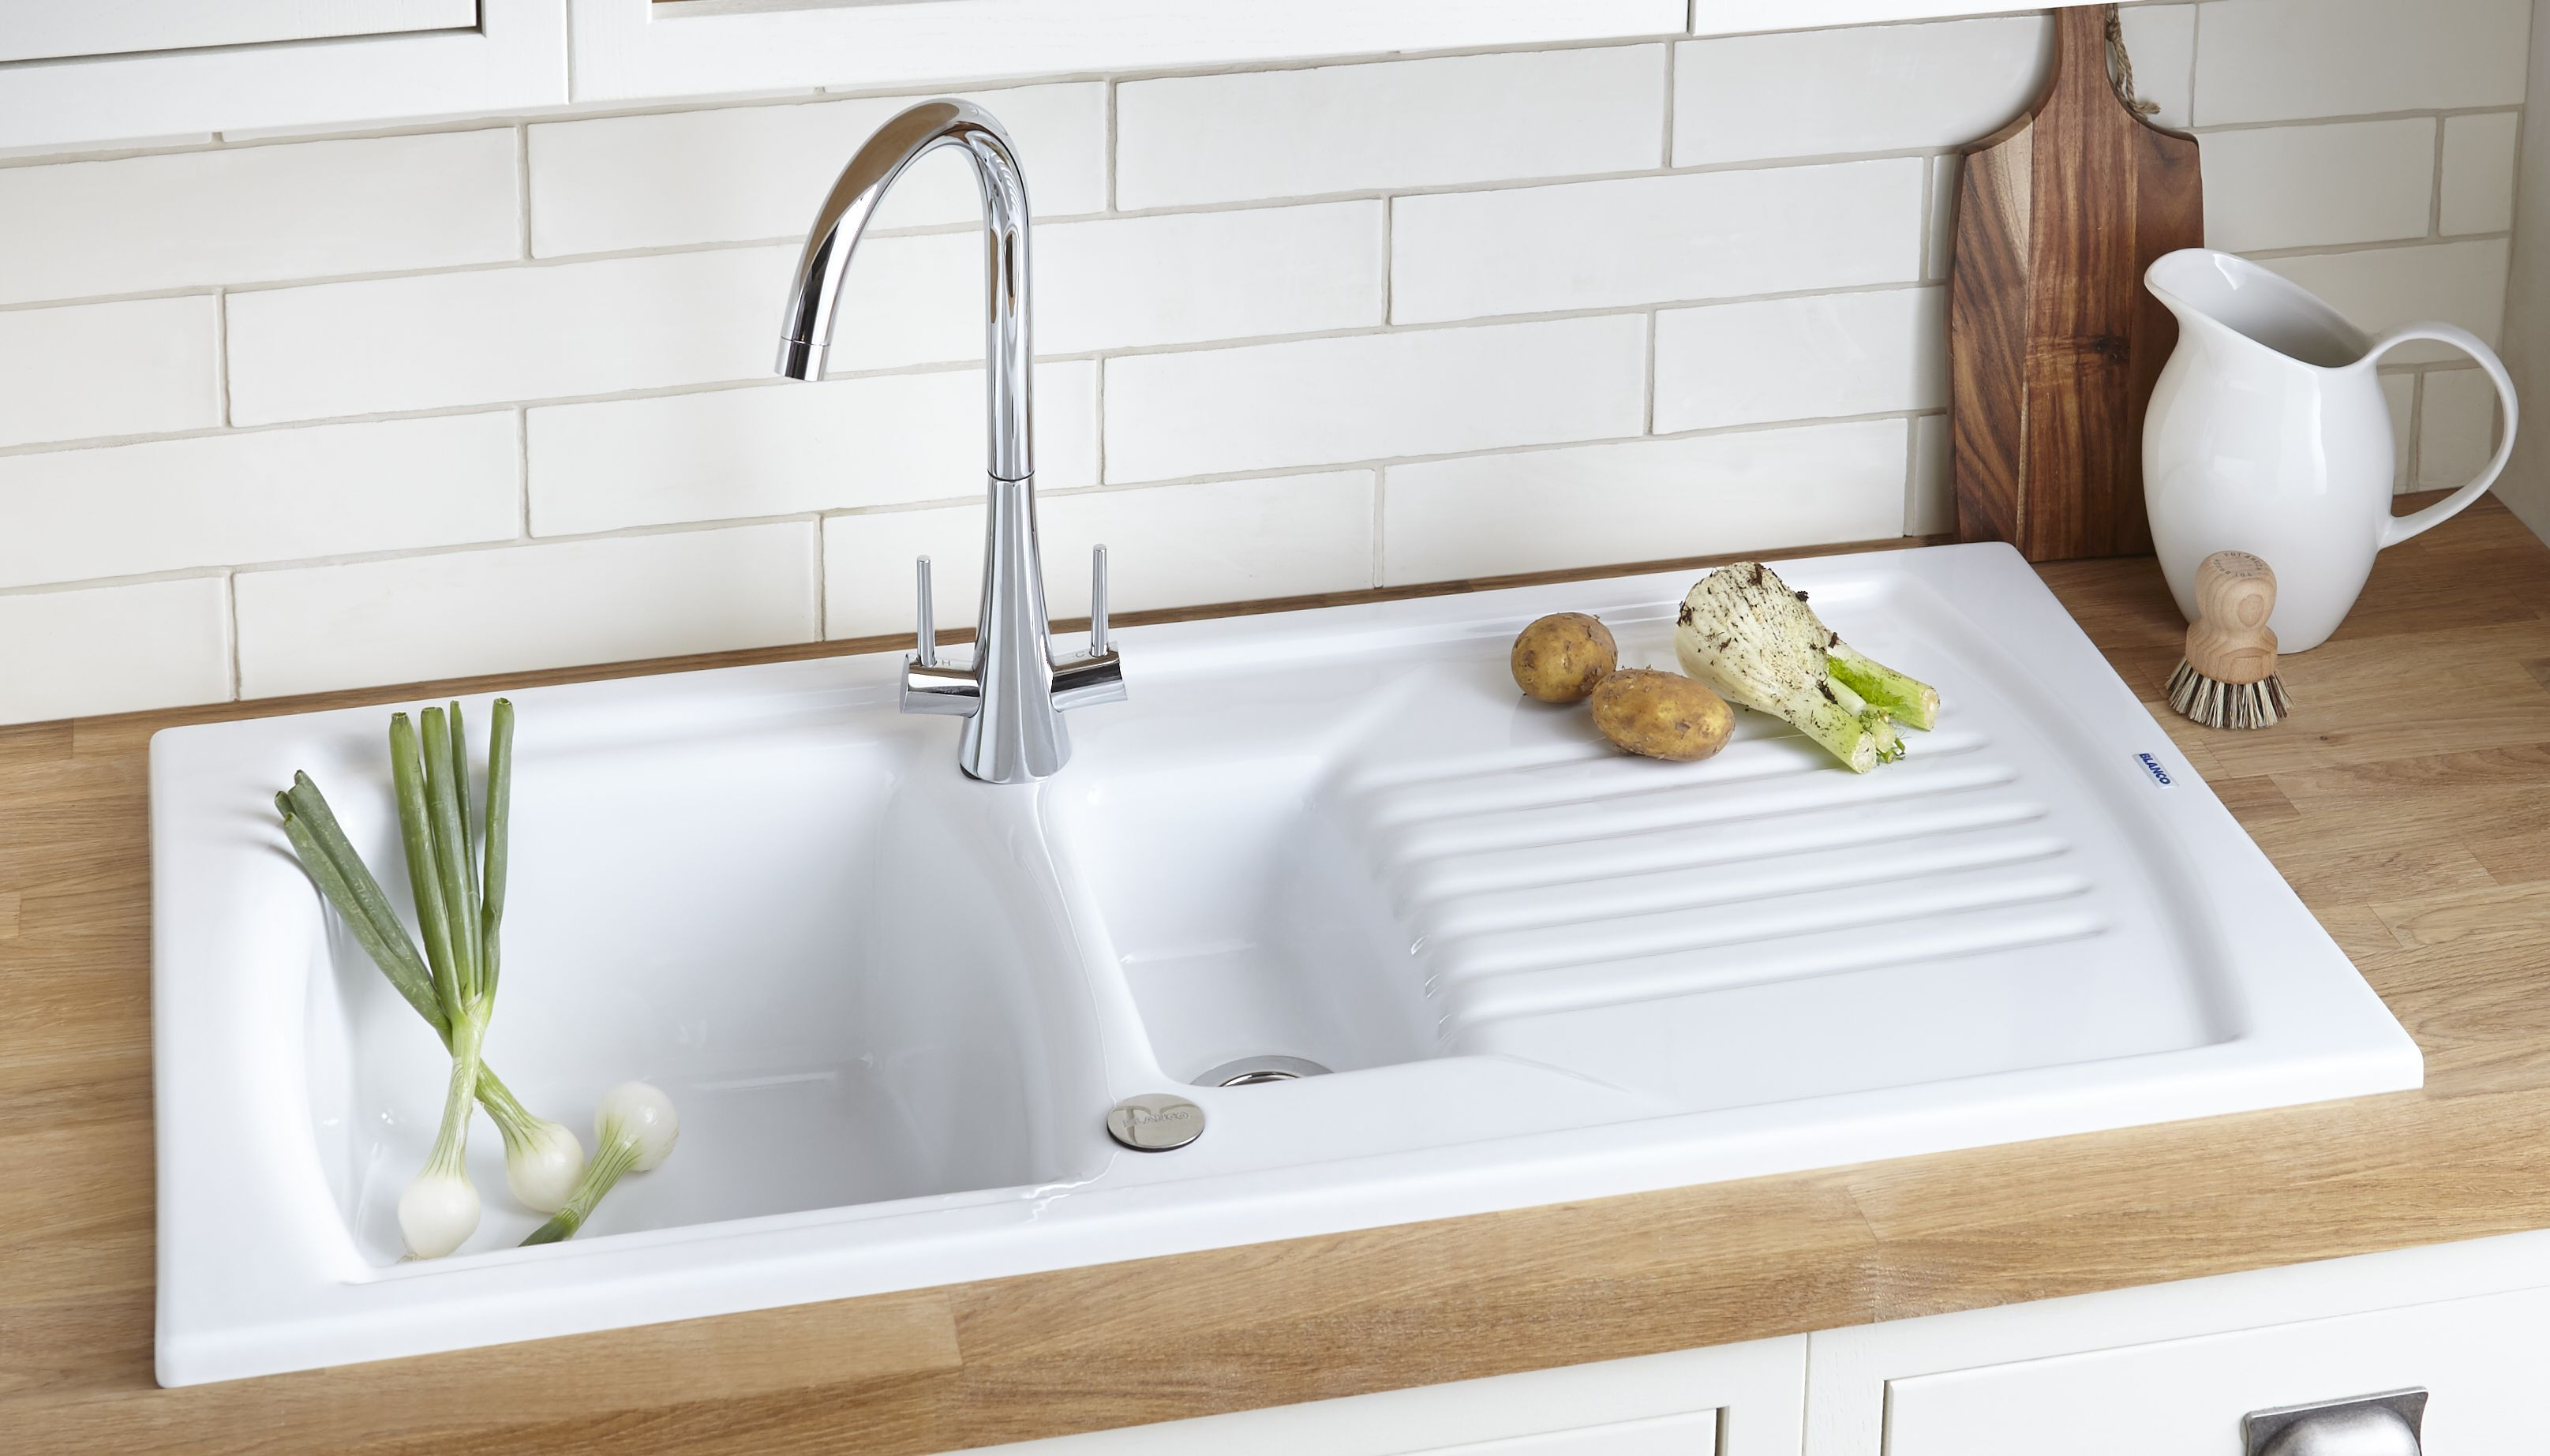 Small Kitchen Sink With Draining Board Di 2020 Desain Dapur